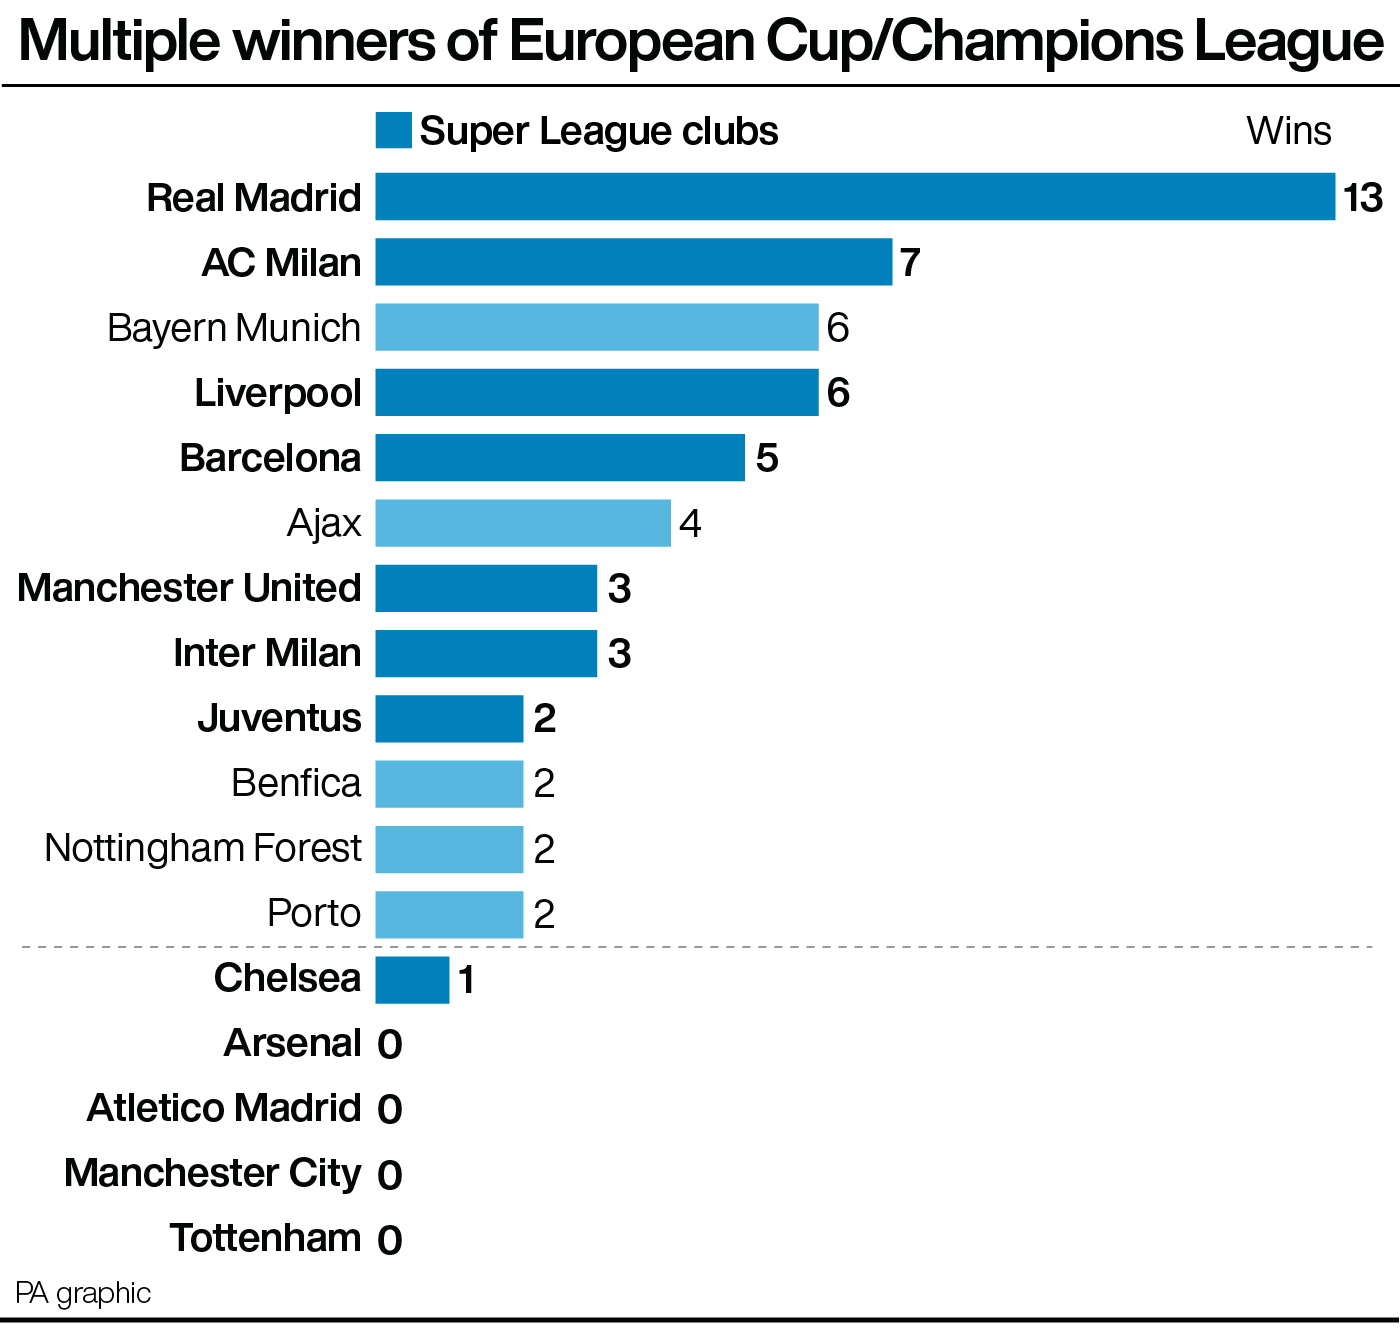 Multiple winners of European Cup/Champions League plus Super League members